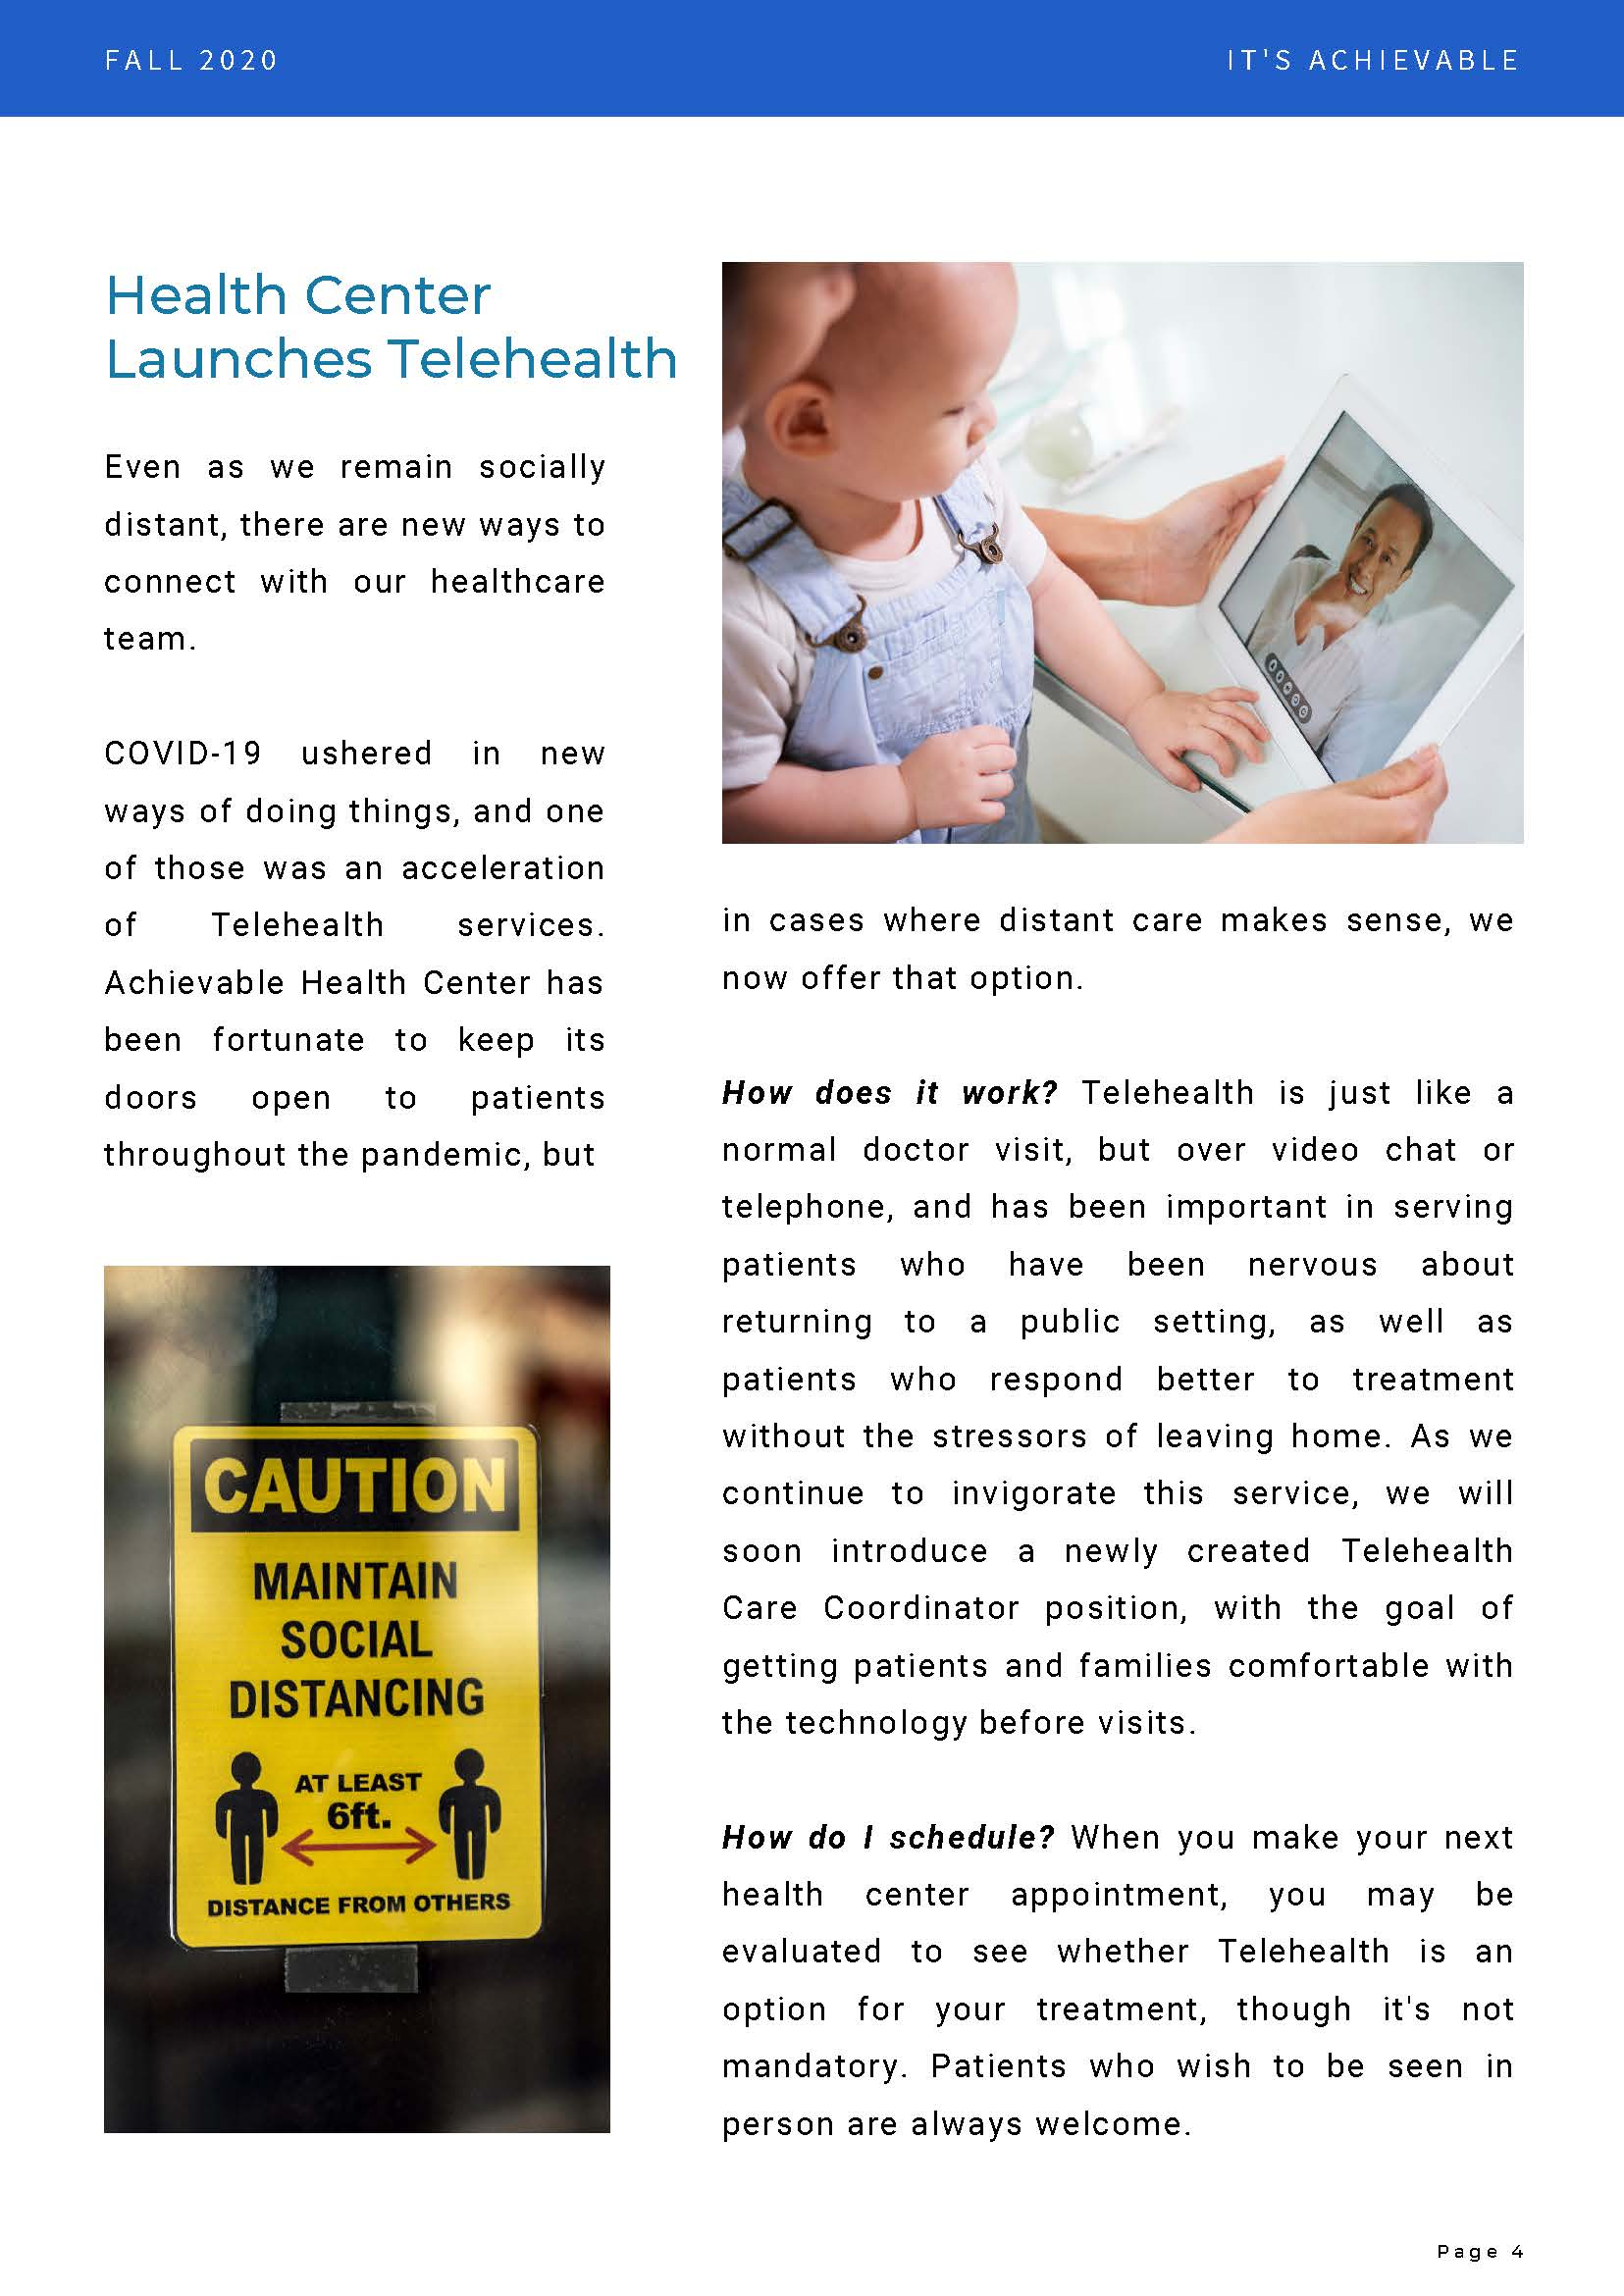 Copy of Achievable Fall 2020 Newsletter FINAL (1)_Page_4